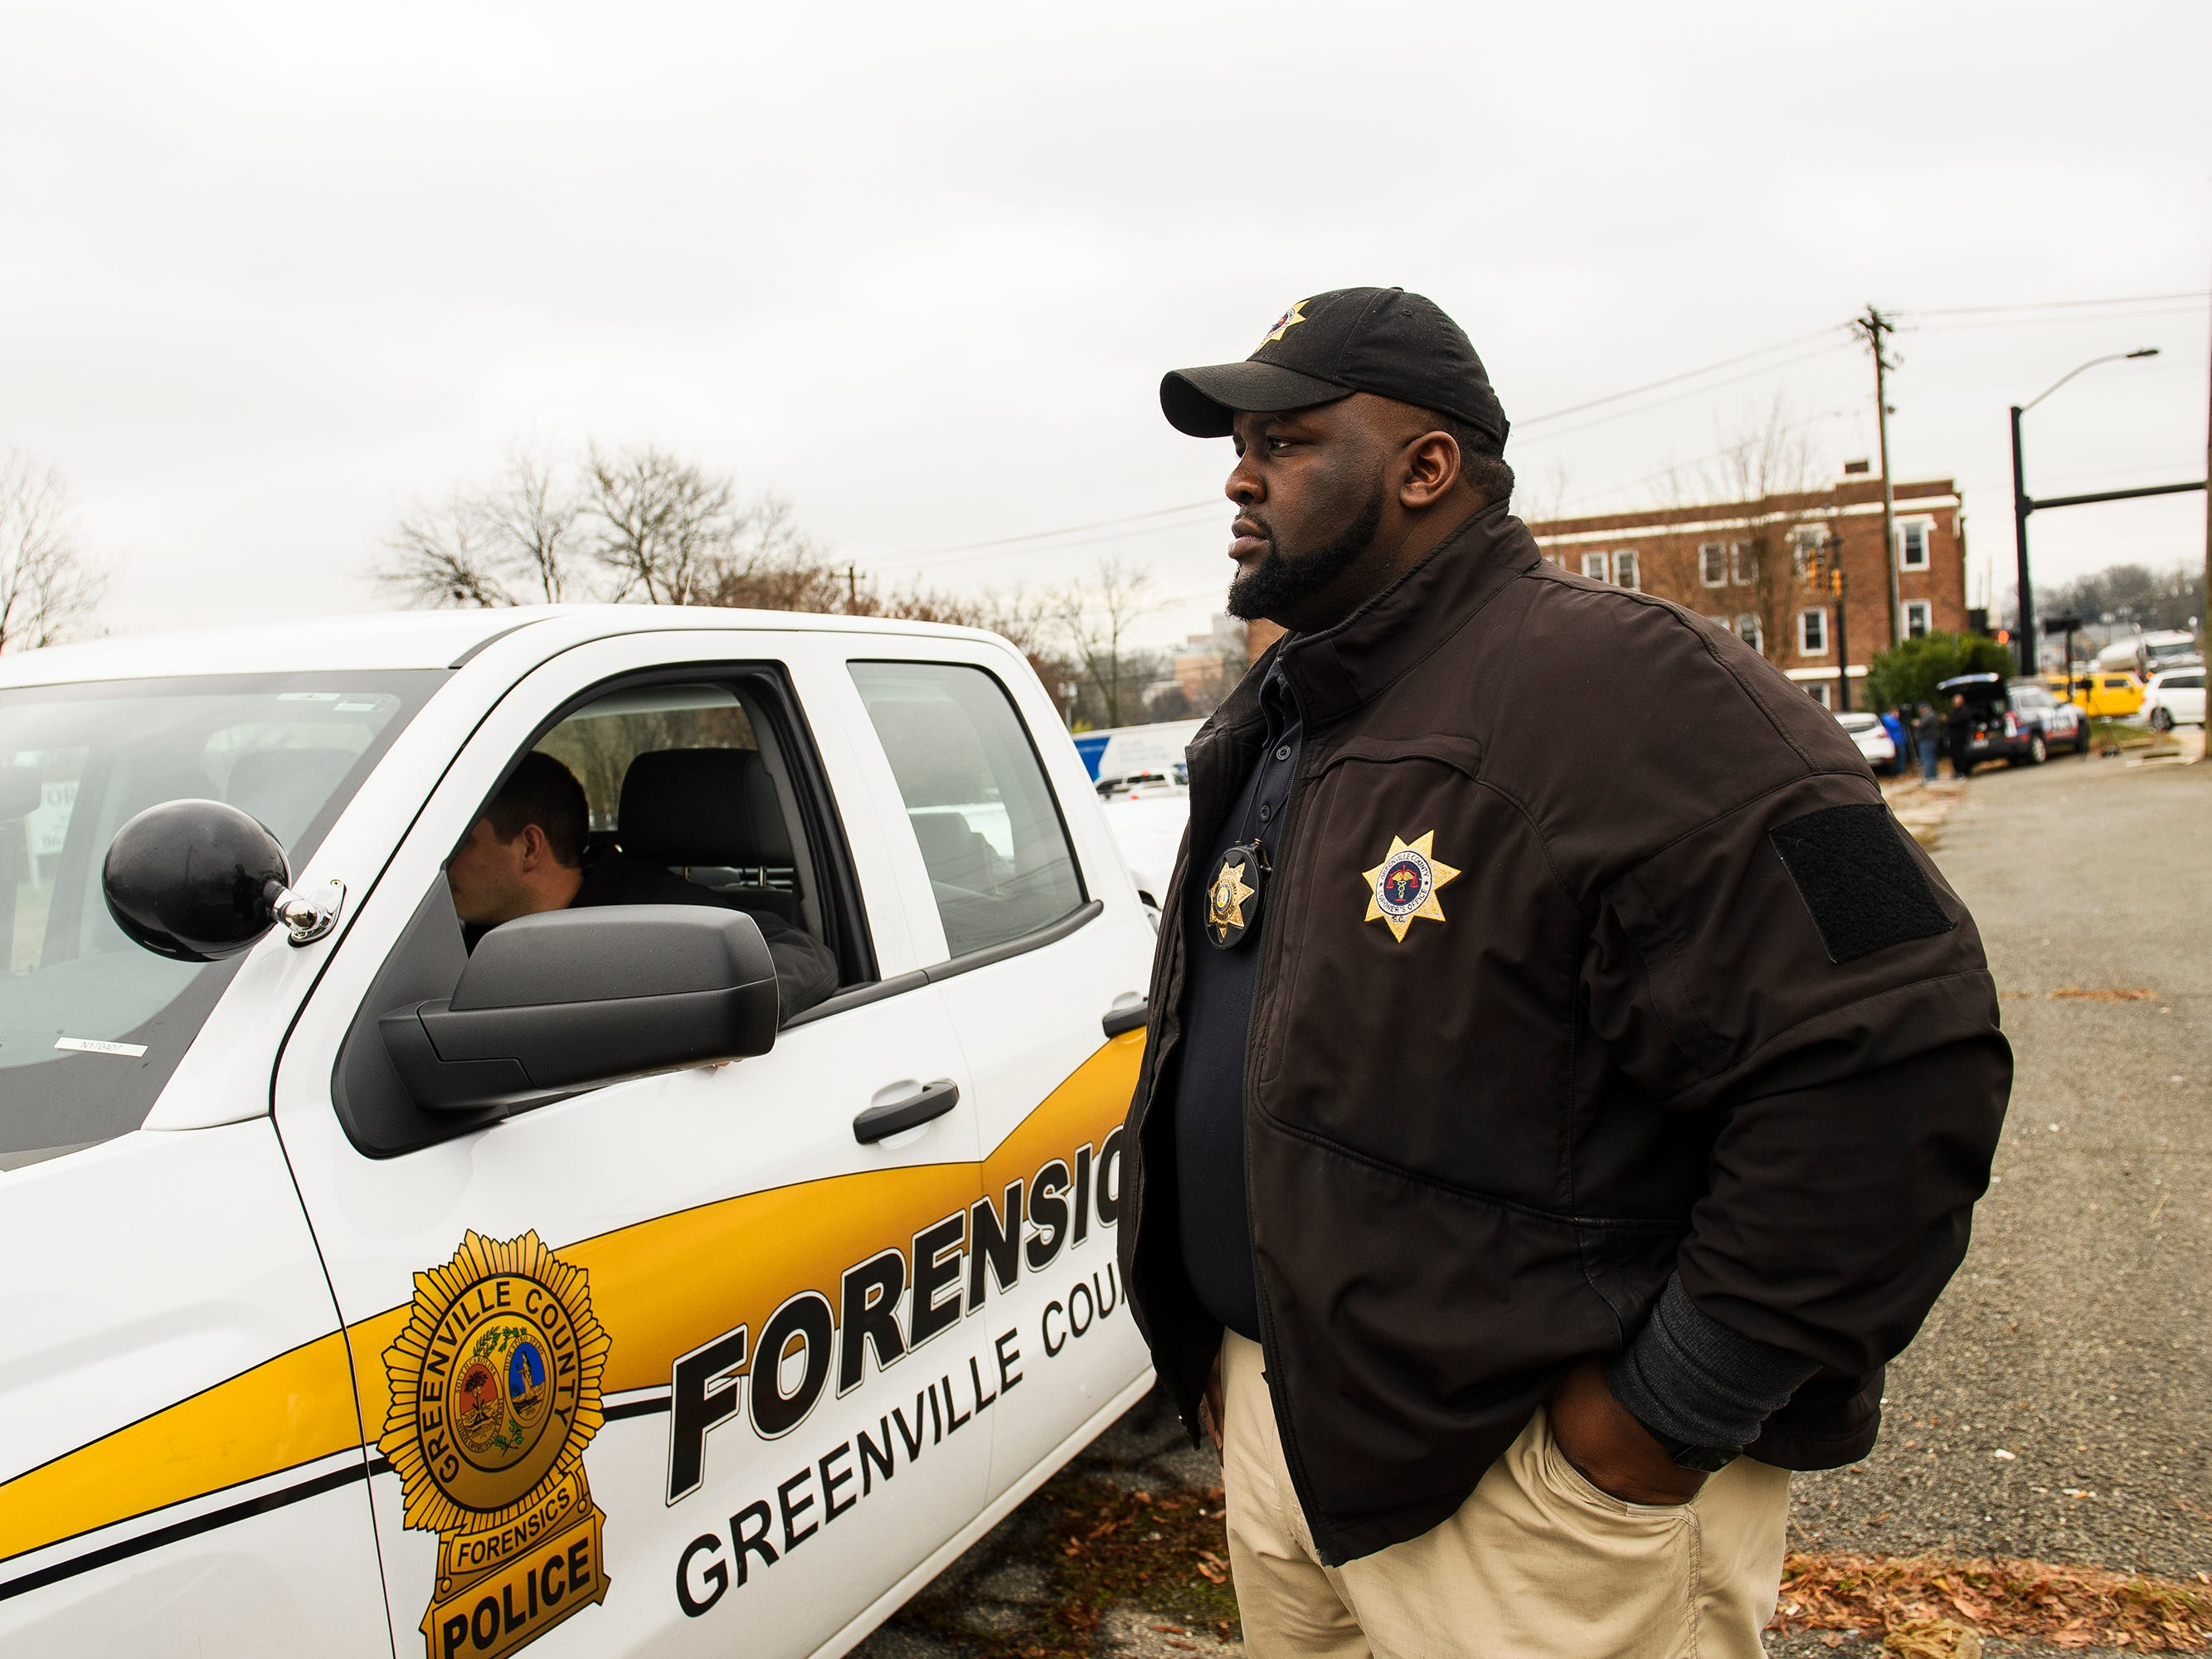 Gary Sessions of the Greenville County Coroner's Office stands outside of the scene of a suicide in Greenville on Monday, Jan. 14, 2019